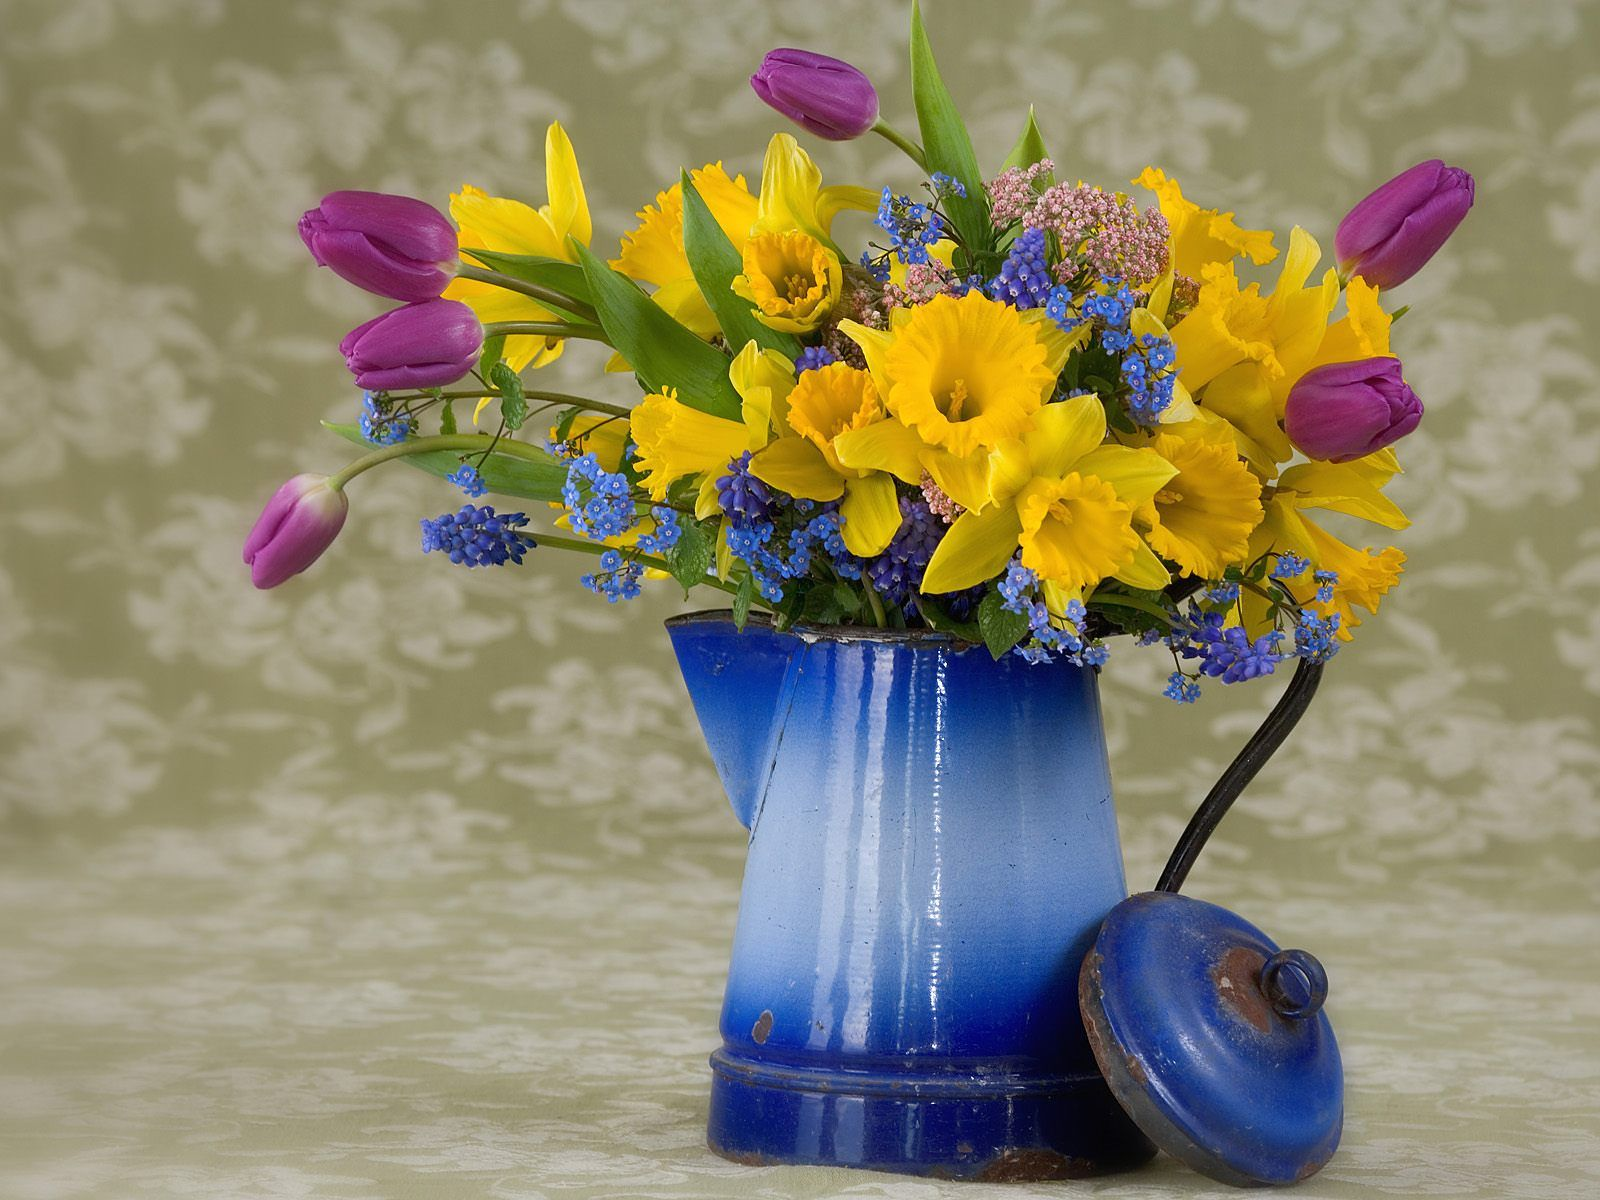 flower arrangements | Flowers Wallpapers - Download Free Spring ...